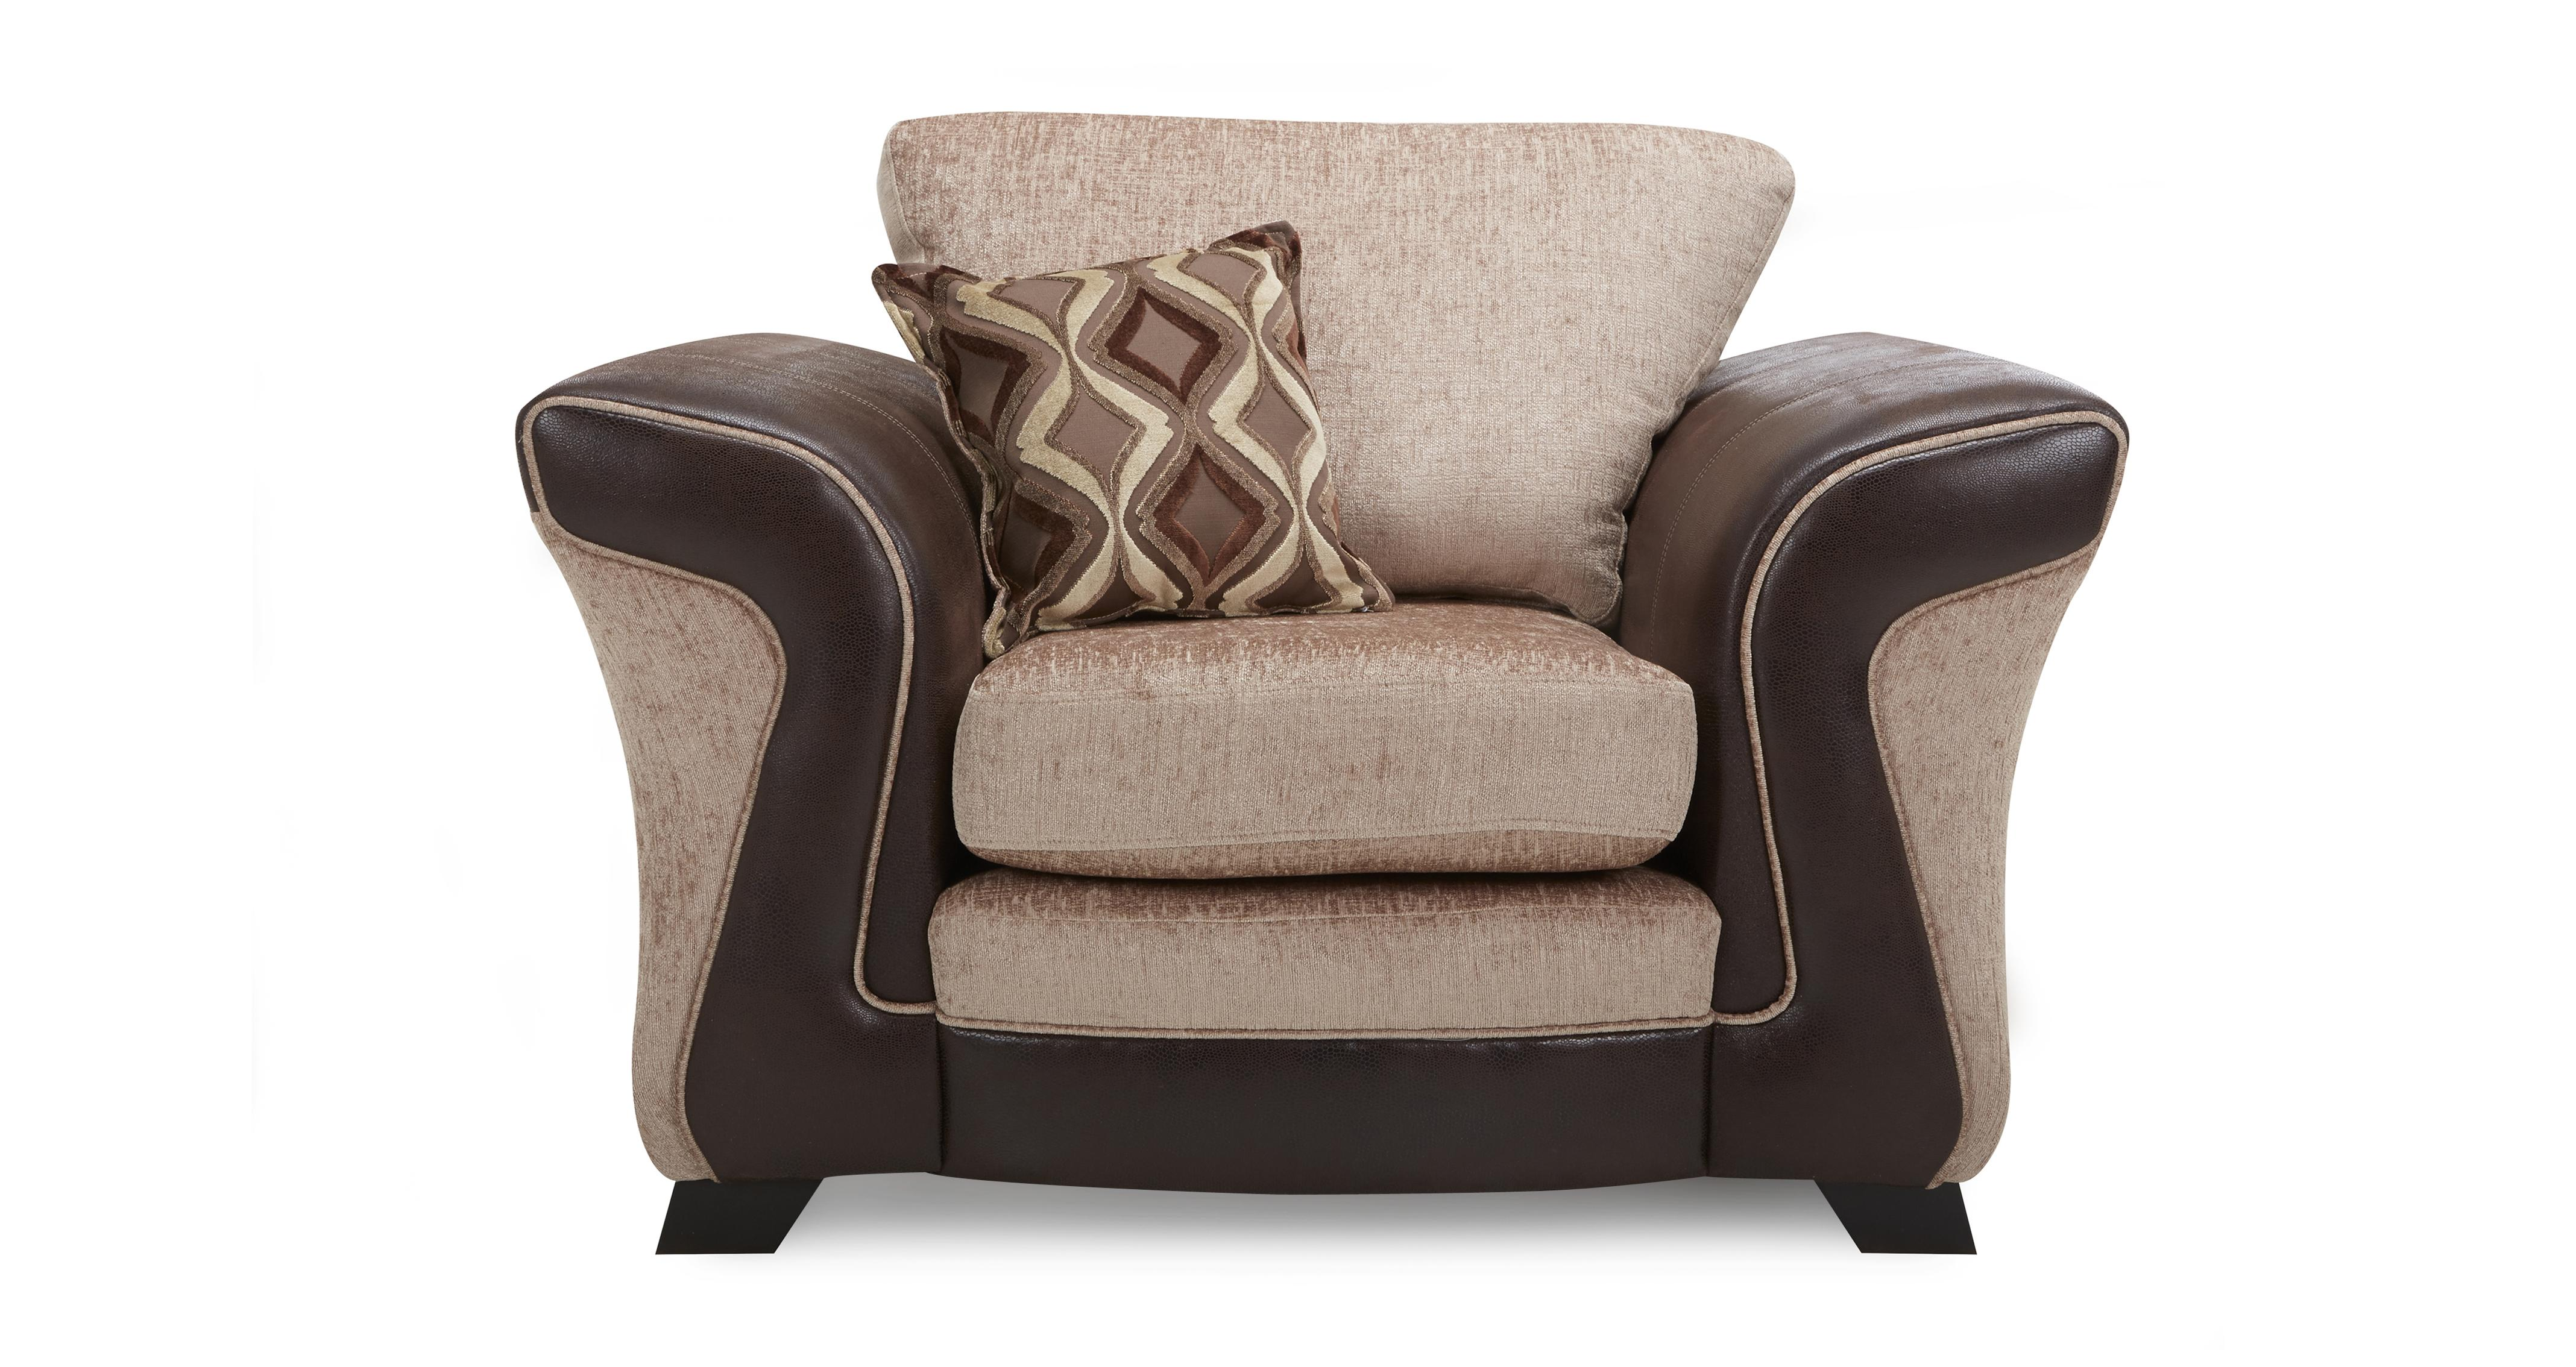 ex display sofa bed uk surfers 2005 rar dfs chase mink fabric set inc 2 seater chair